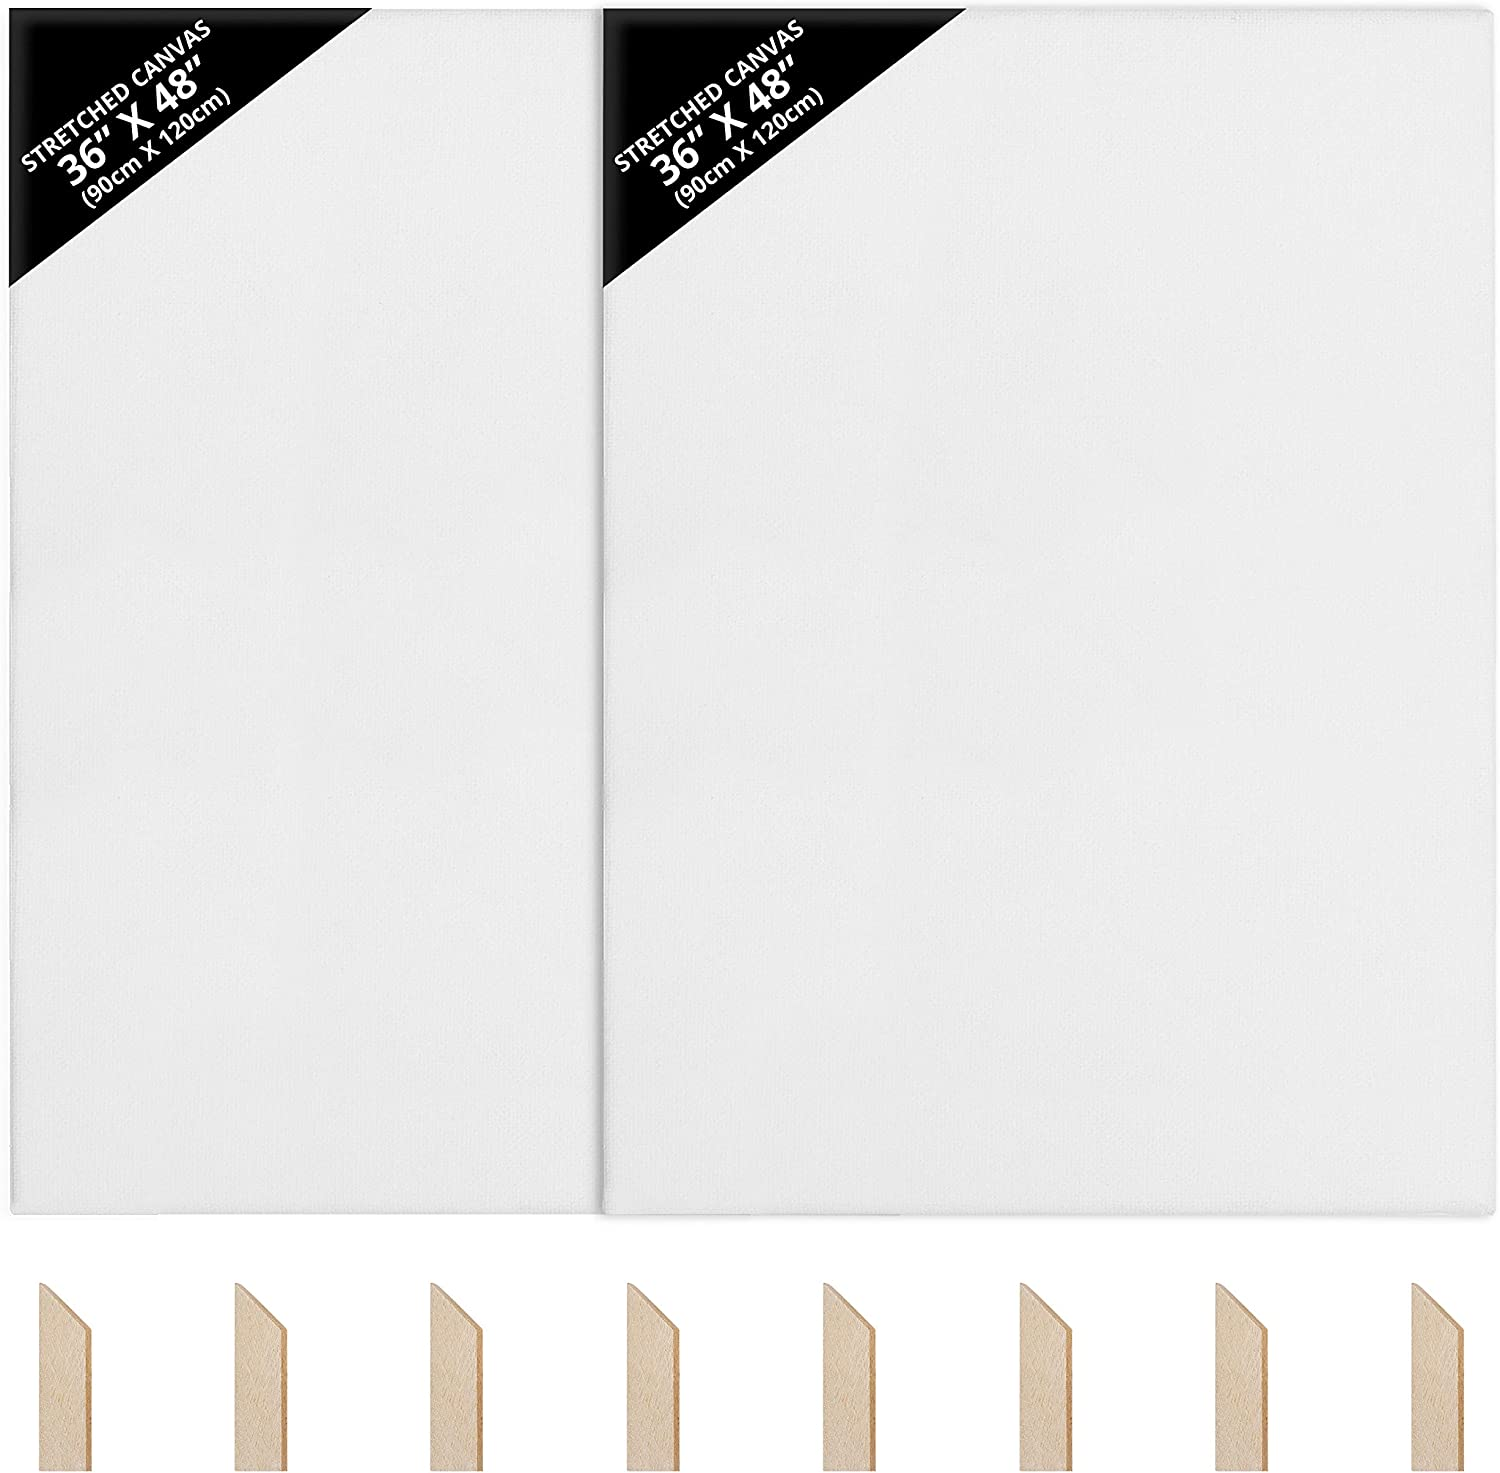 2x Canvas Board Cotton Blank Painting Canvas Panels Stretched Framed For Wet Art